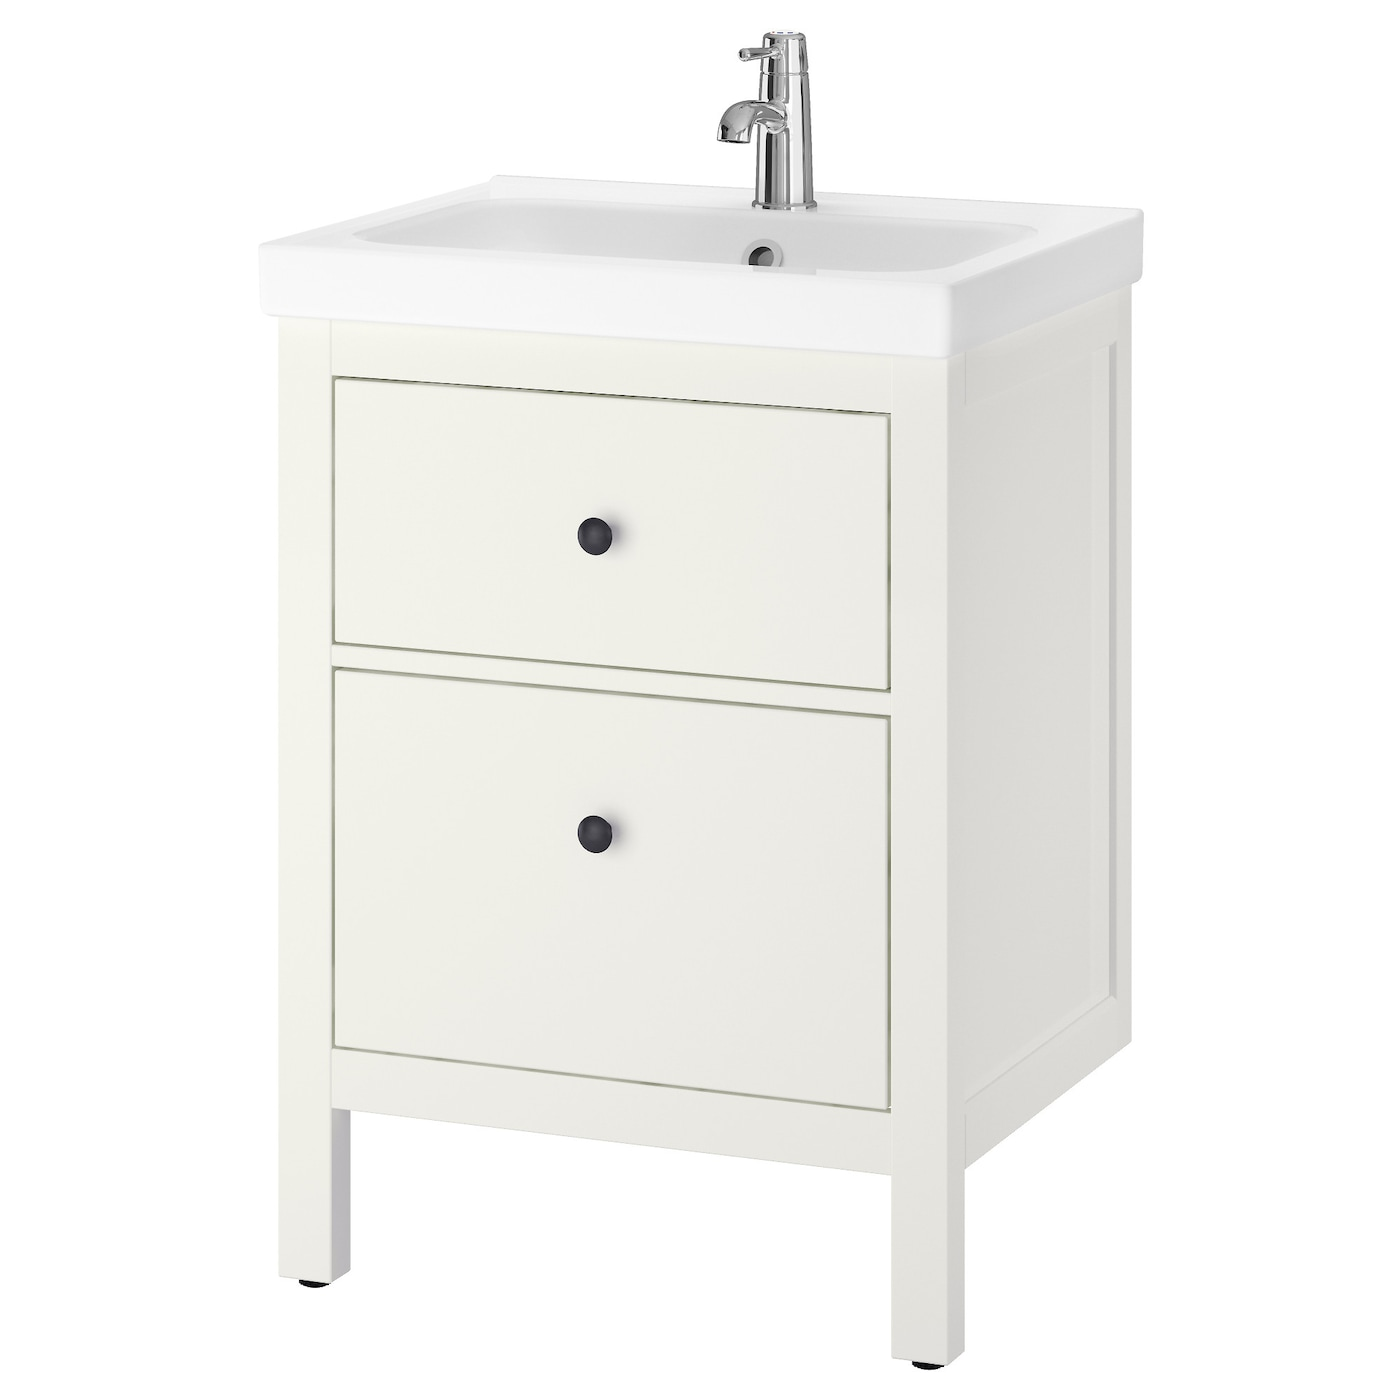 Image of: Cool Floating Bathroom Sink Vanity IKEA Designs